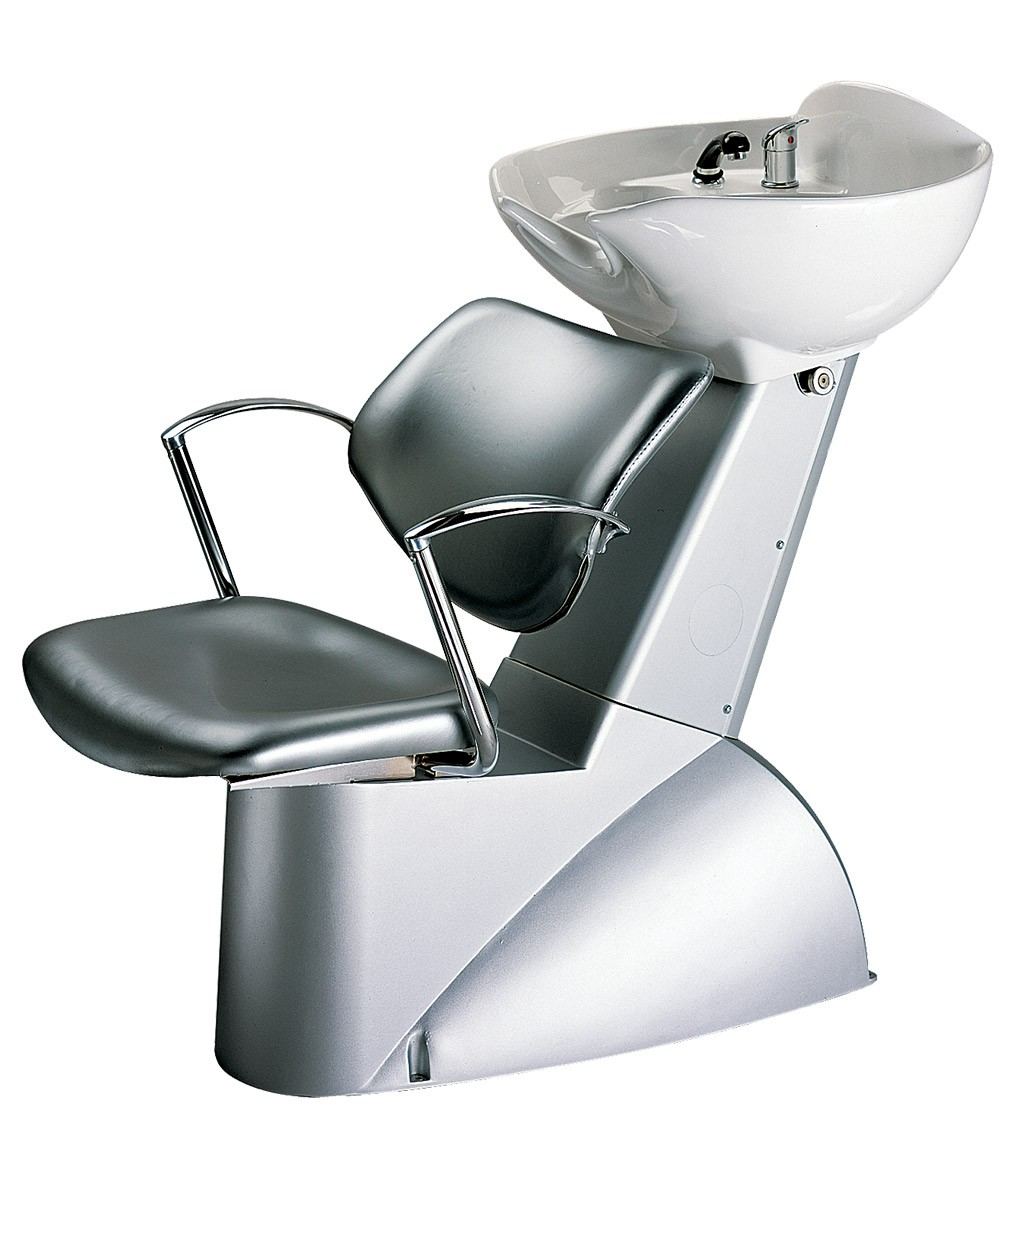 Belmont barber chairs - Belmont Barber Chairs